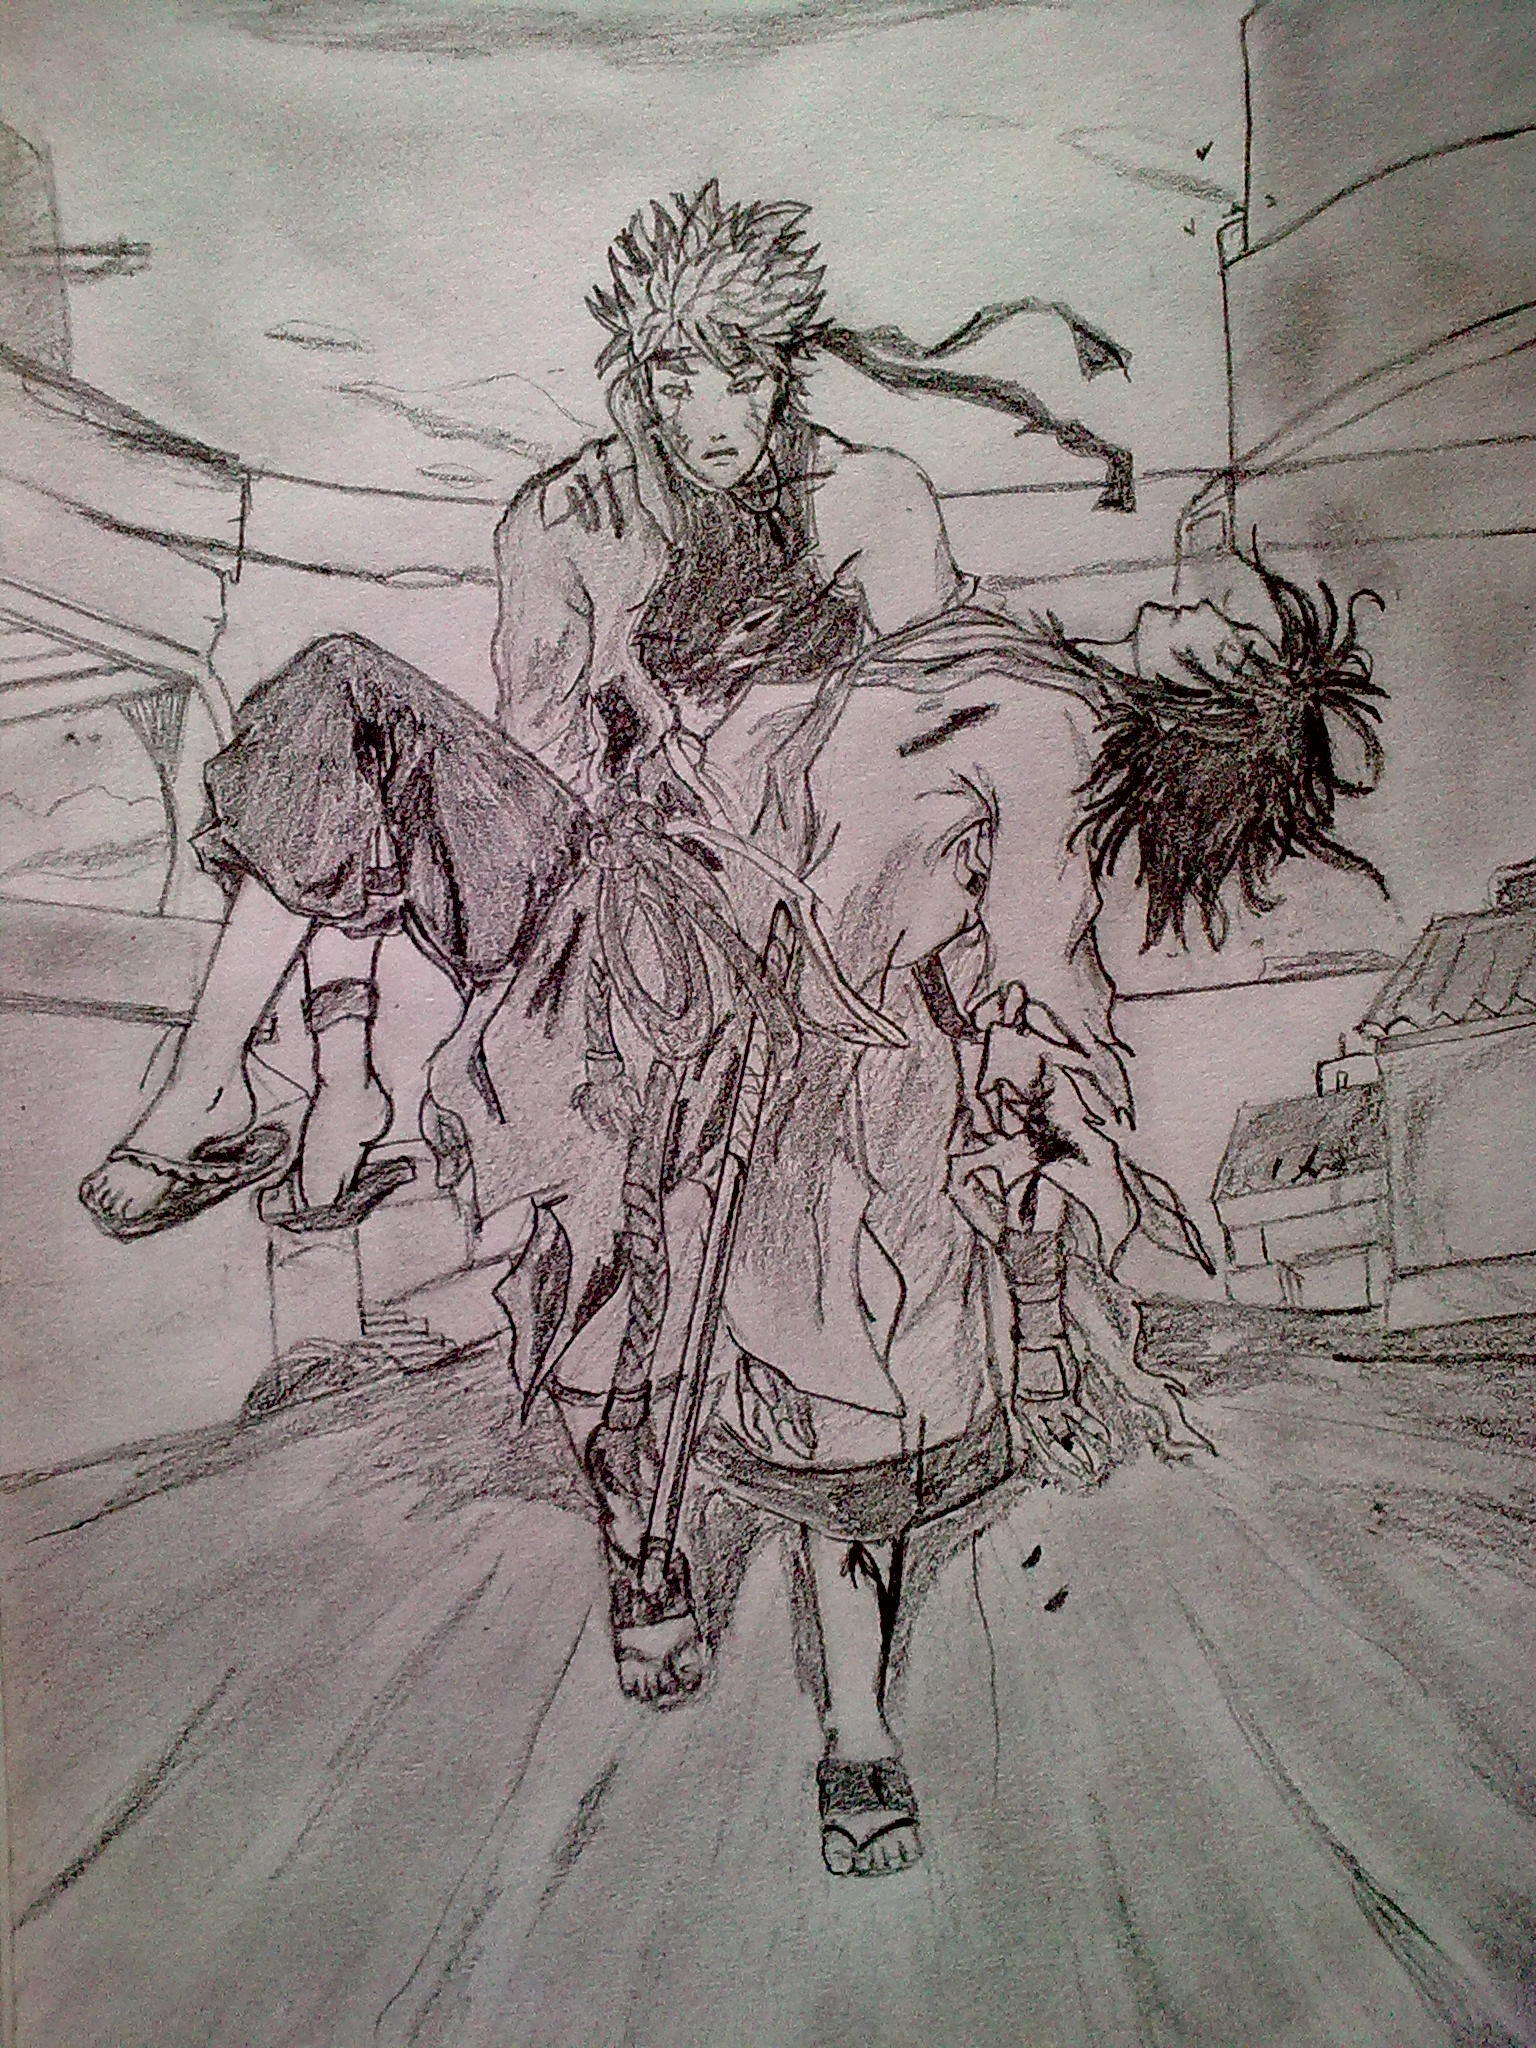 Its my 1st black and white naruto drawing what do u guys